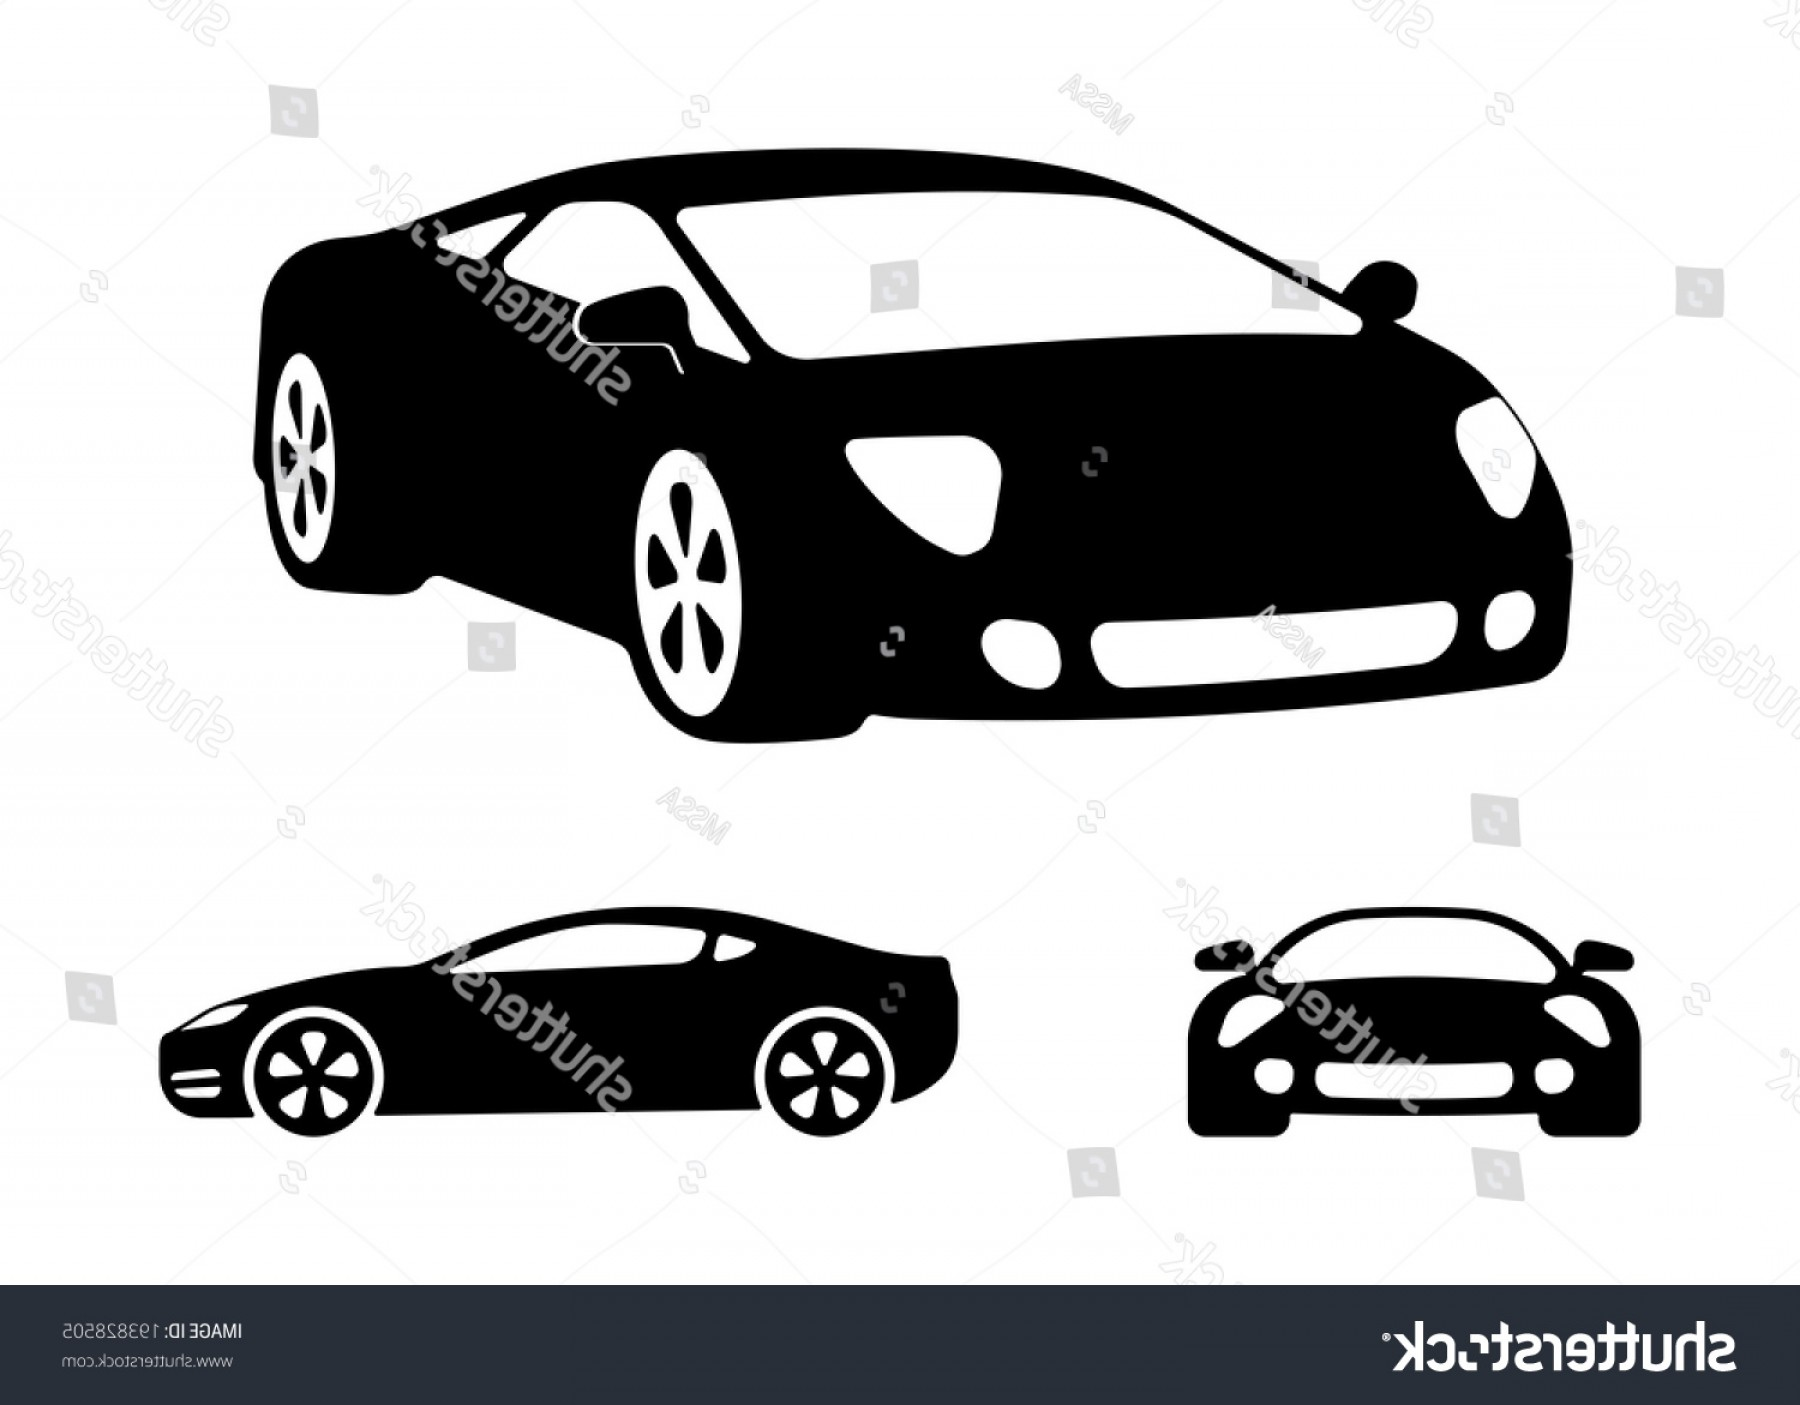 Car Silhouette Vector Free: Vector Luxury Car Silhouettes Frontal Angled